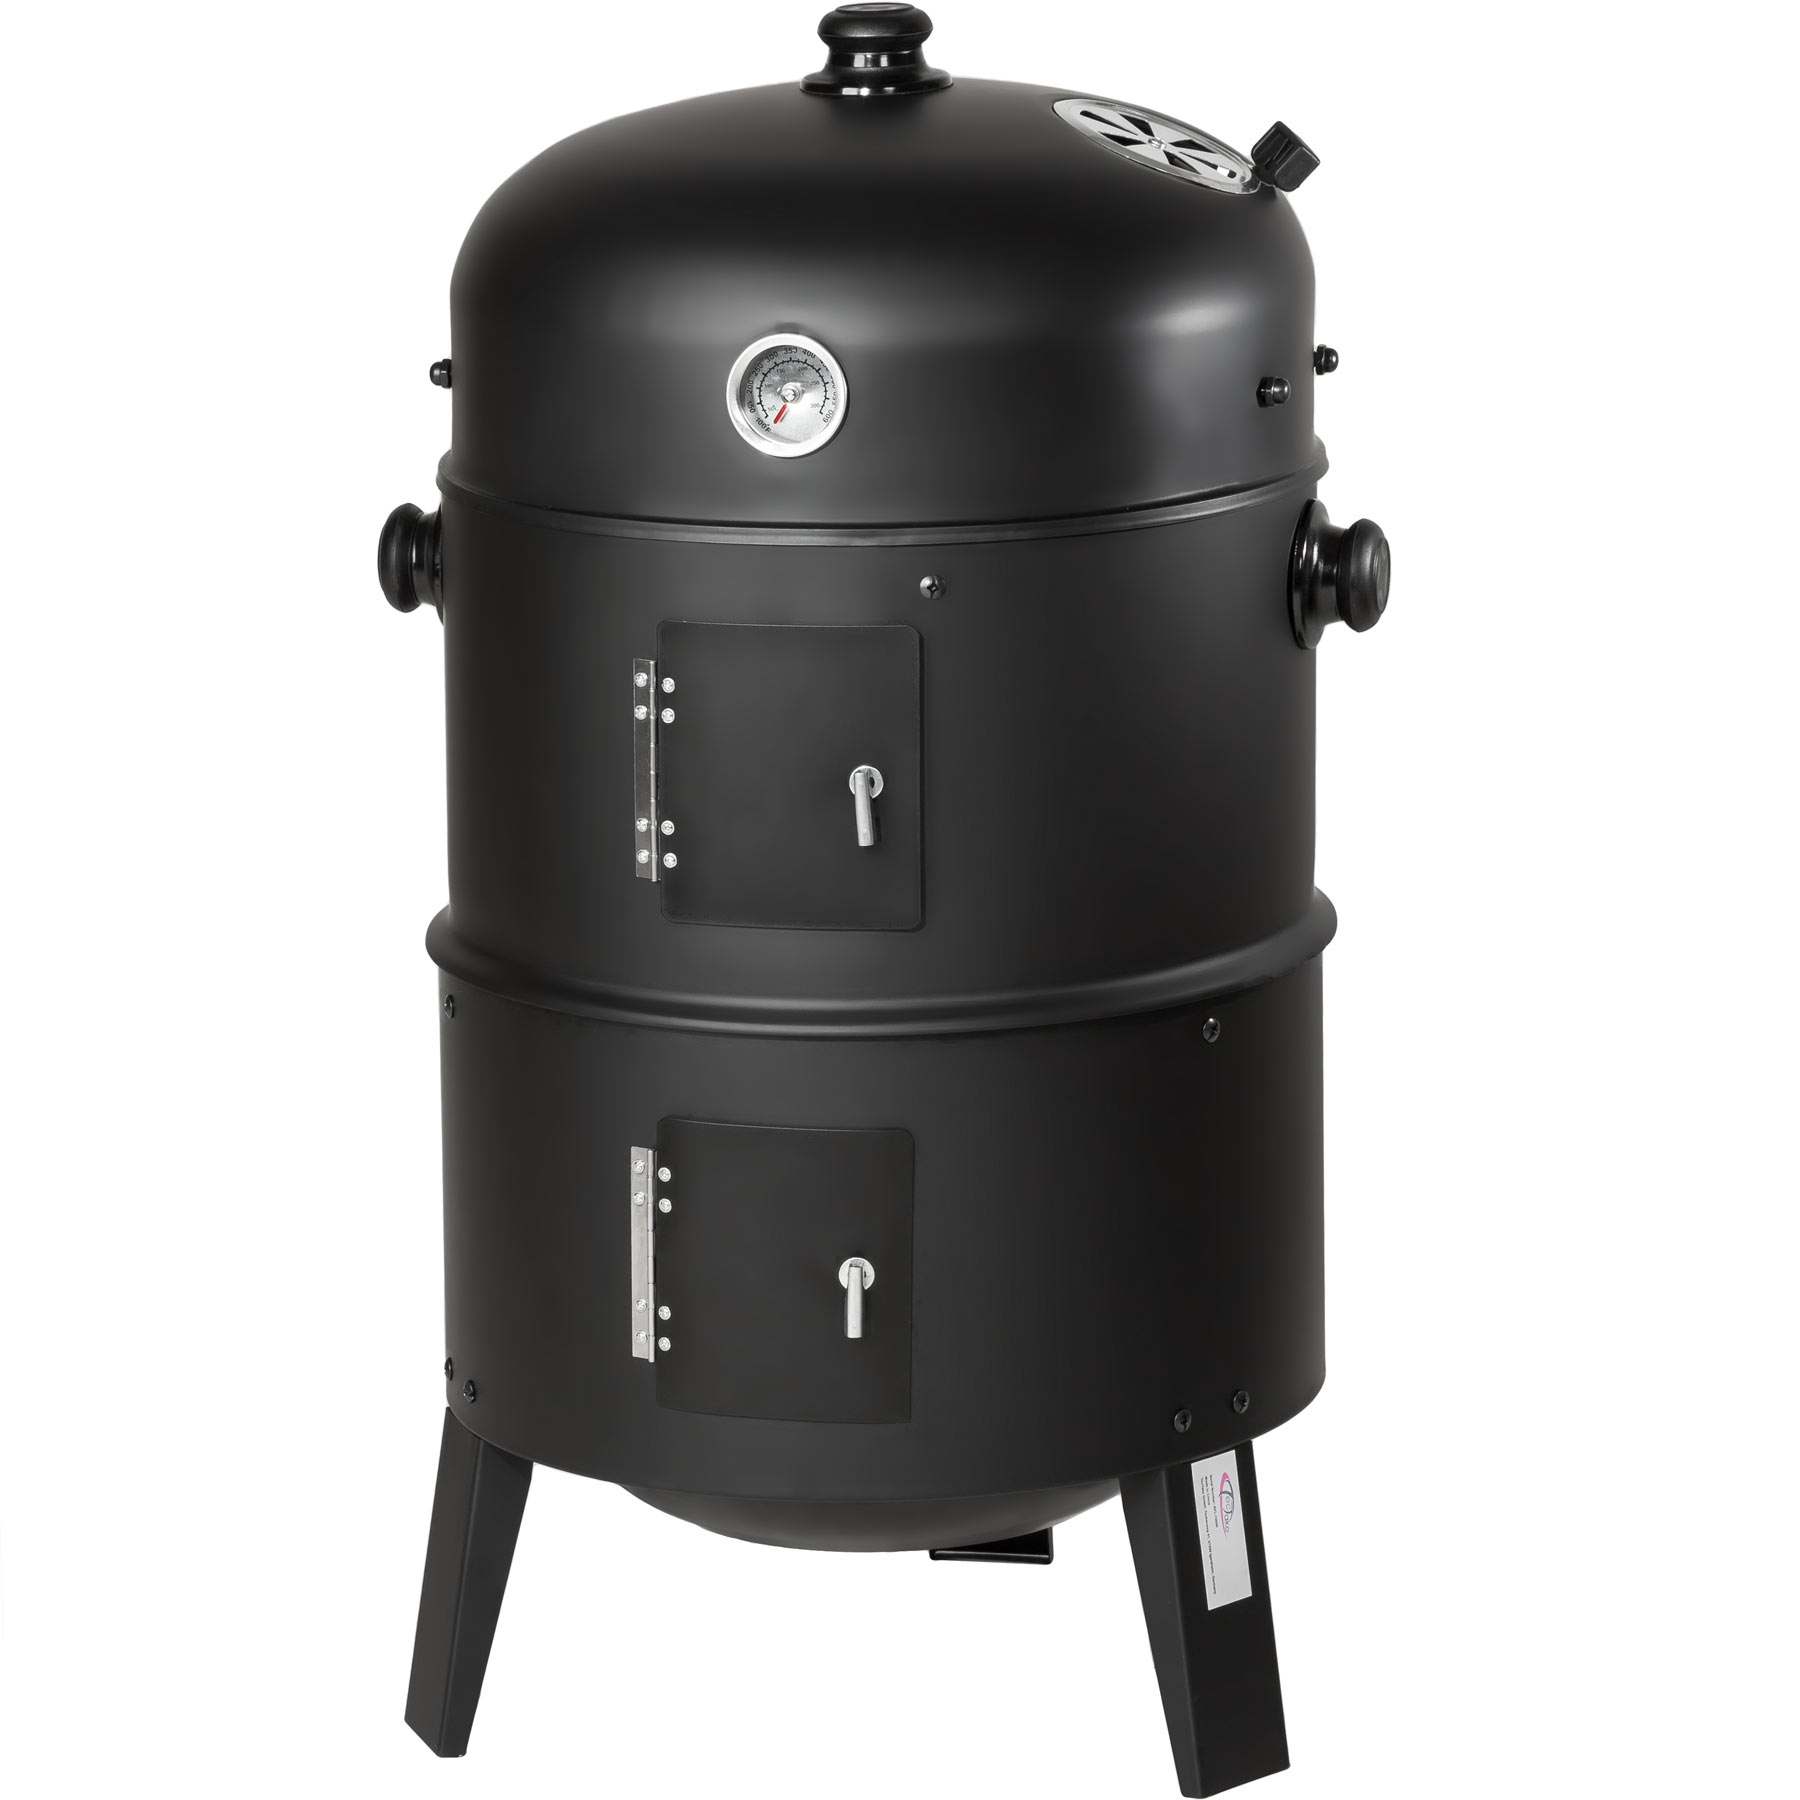 3in1 bbq barbecue charcoal smoker grill with temperature. Black Bedroom Furniture Sets. Home Design Ideas